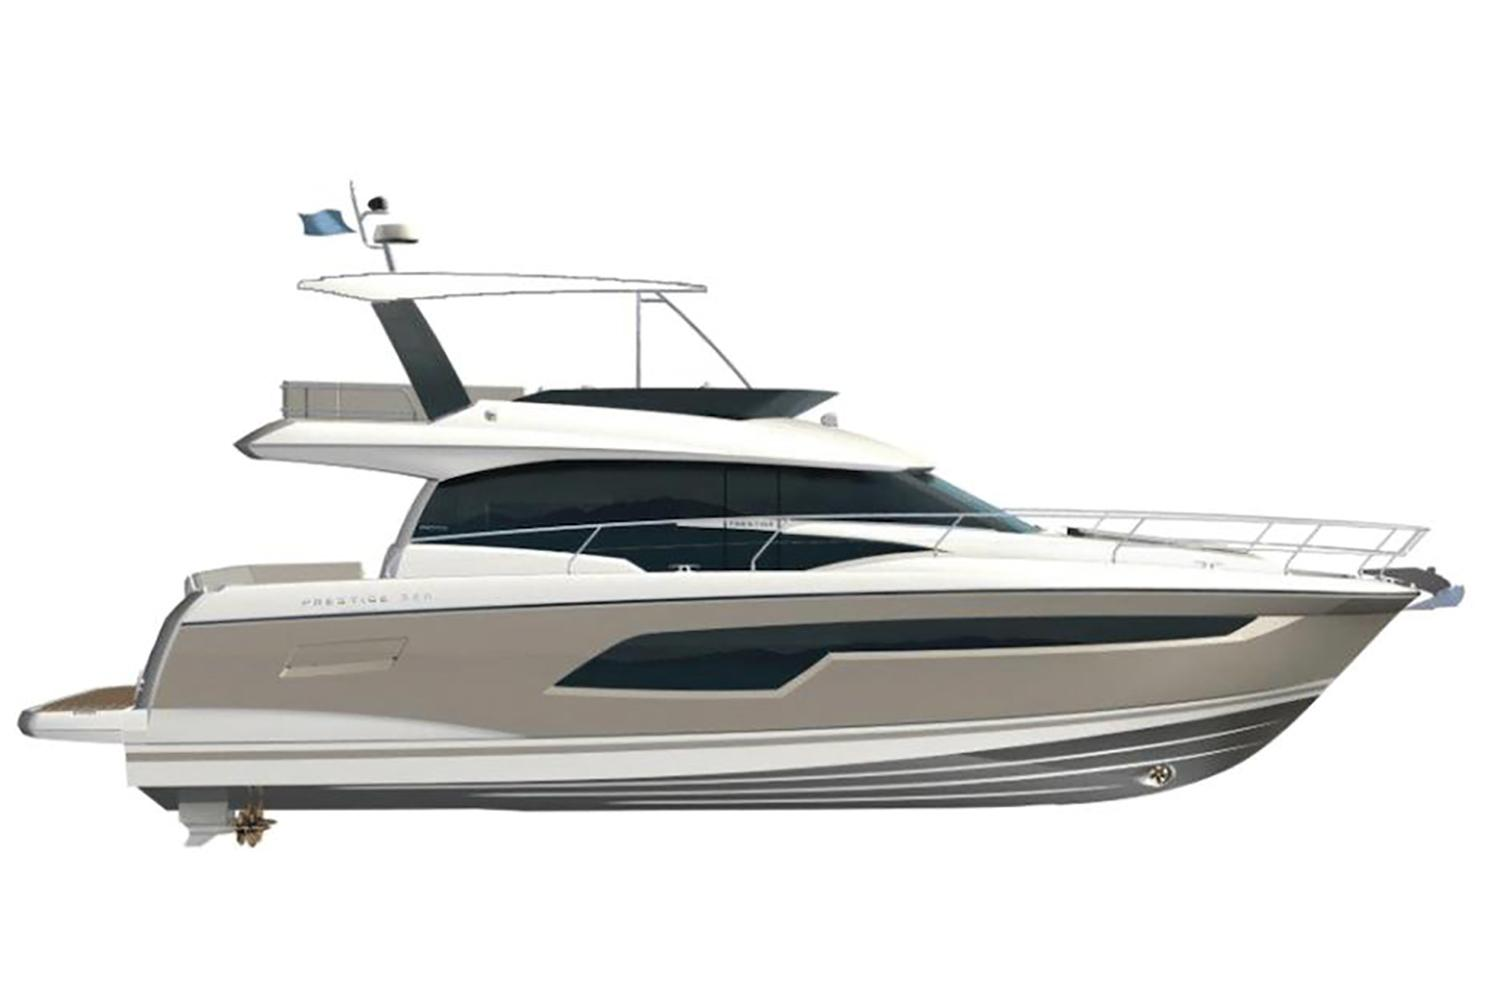 2021 Prestige 520 Fly #75817 inventory image at Sun Country Coastal in San Diego